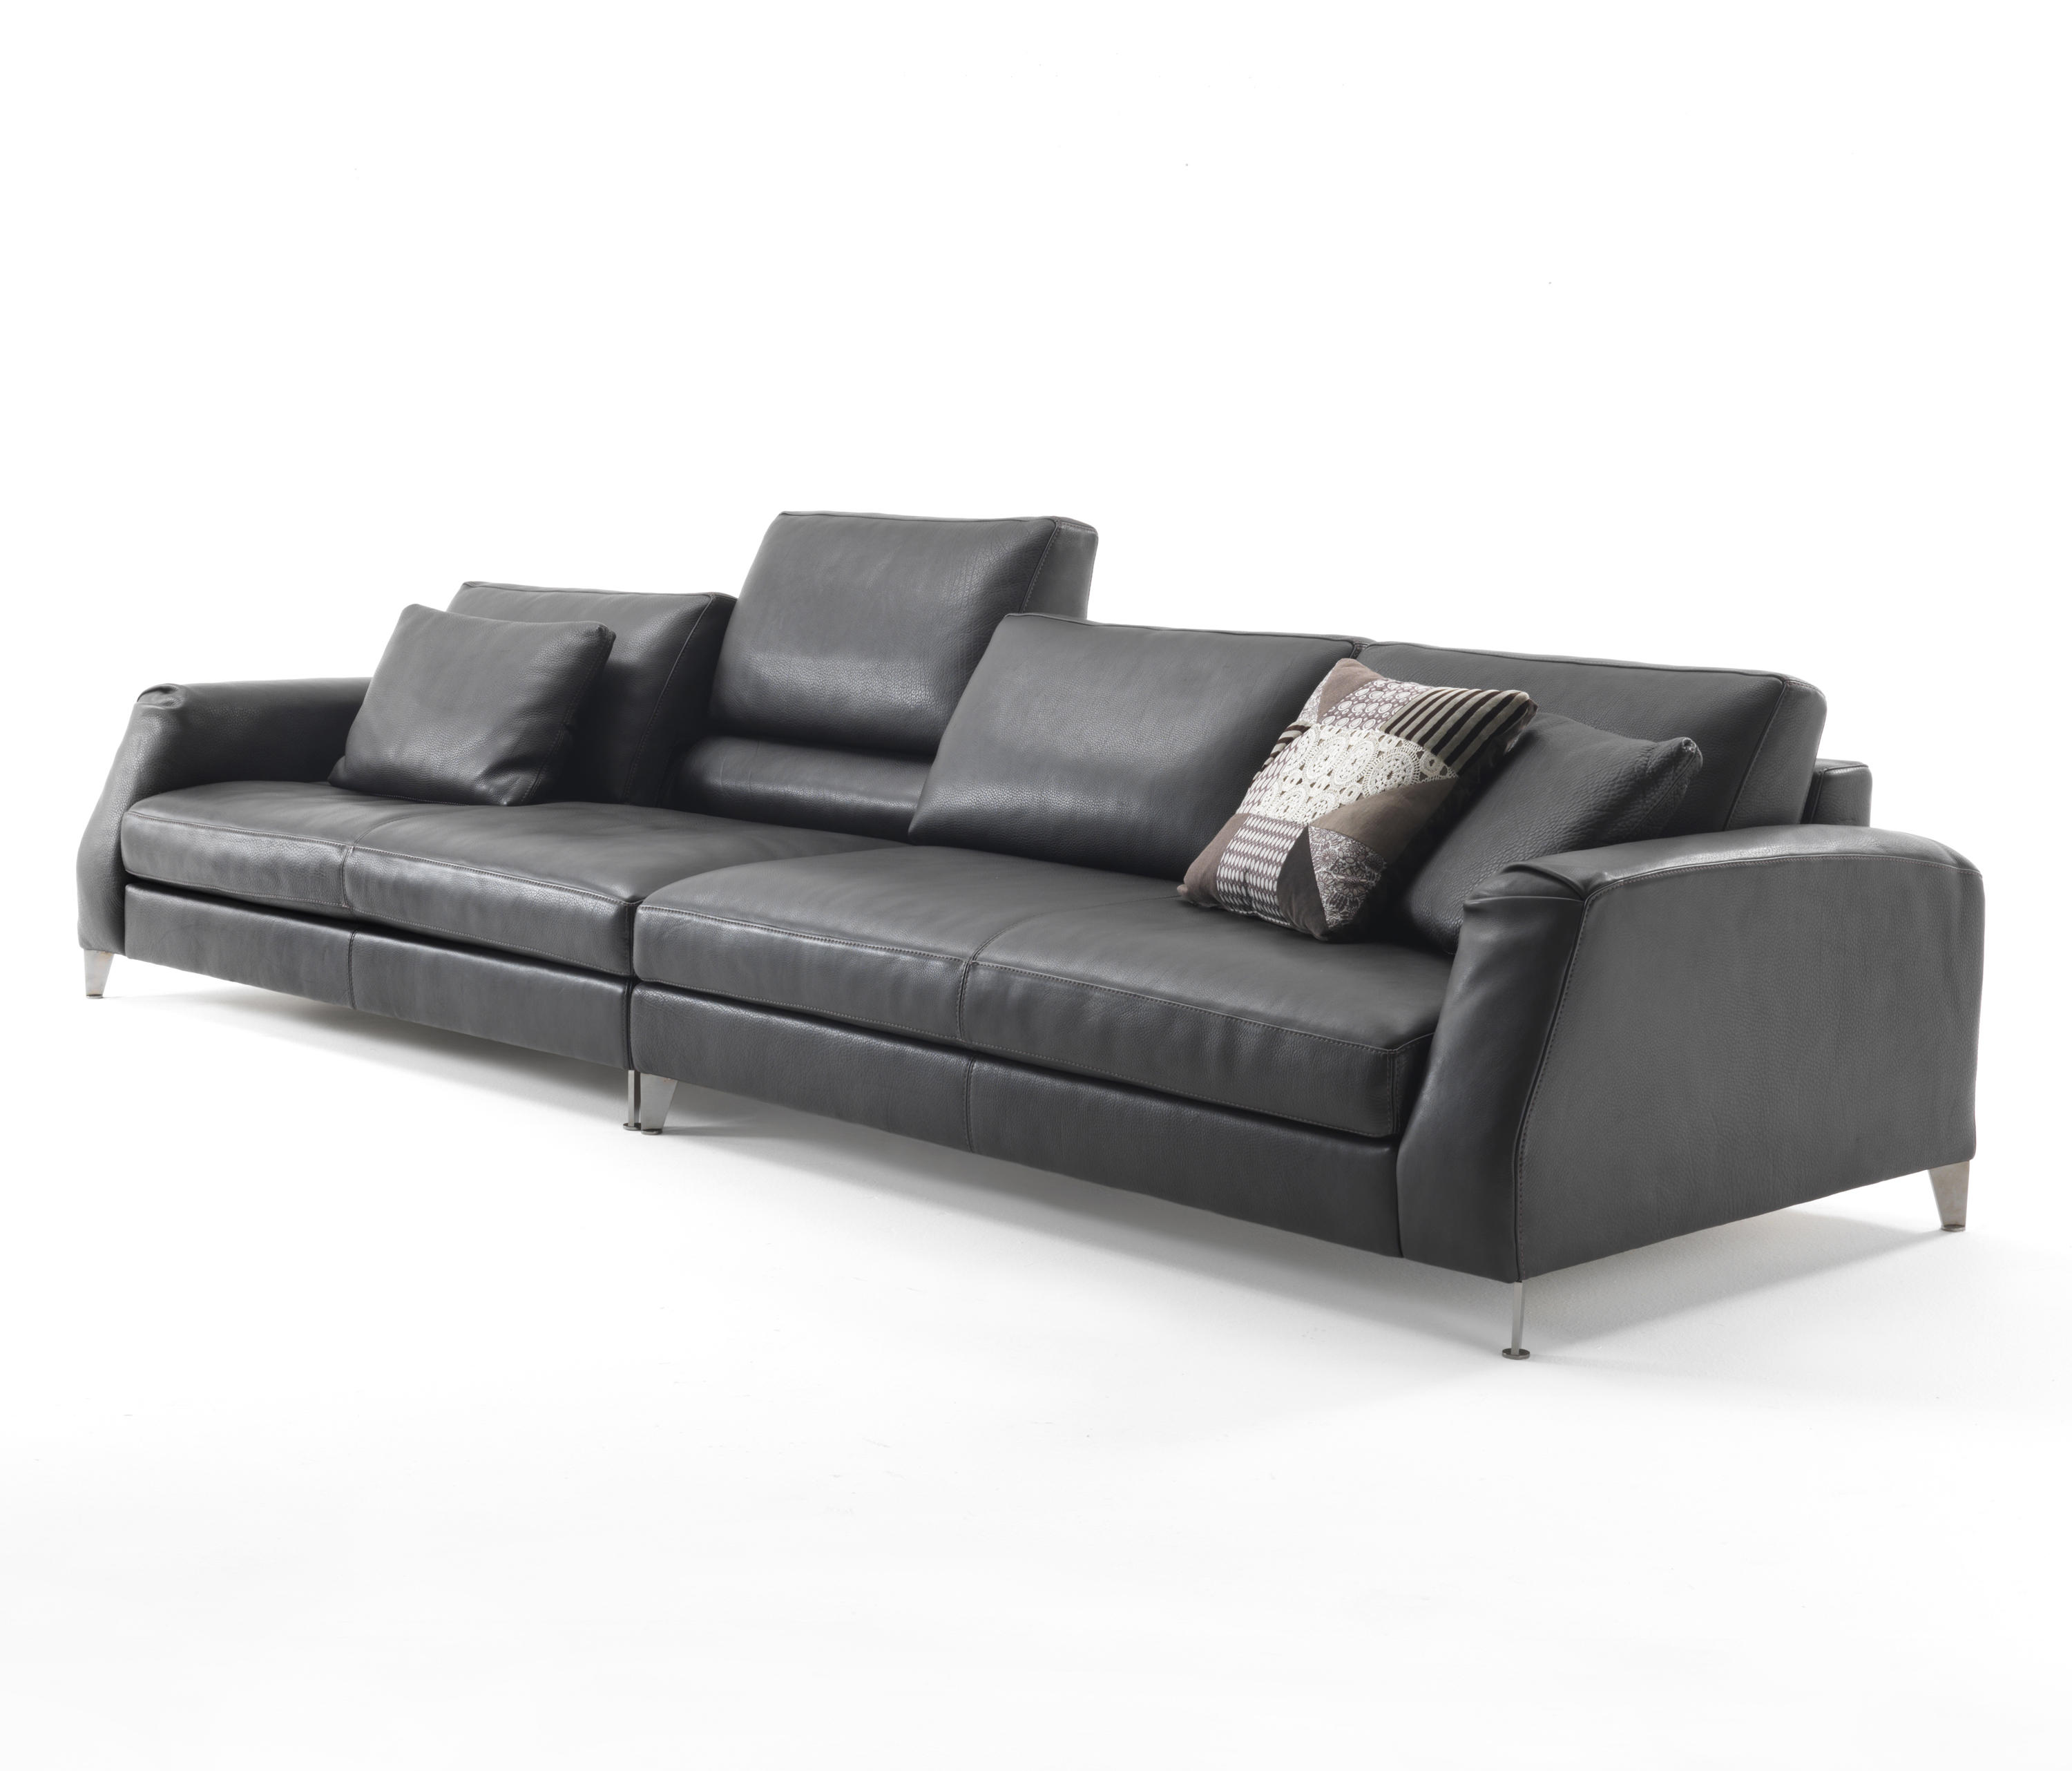 Excellent Davis Class Sofas From Frigerio Architonic Gmtry Best Dining Table And Chair Ideas Images Gmtryco